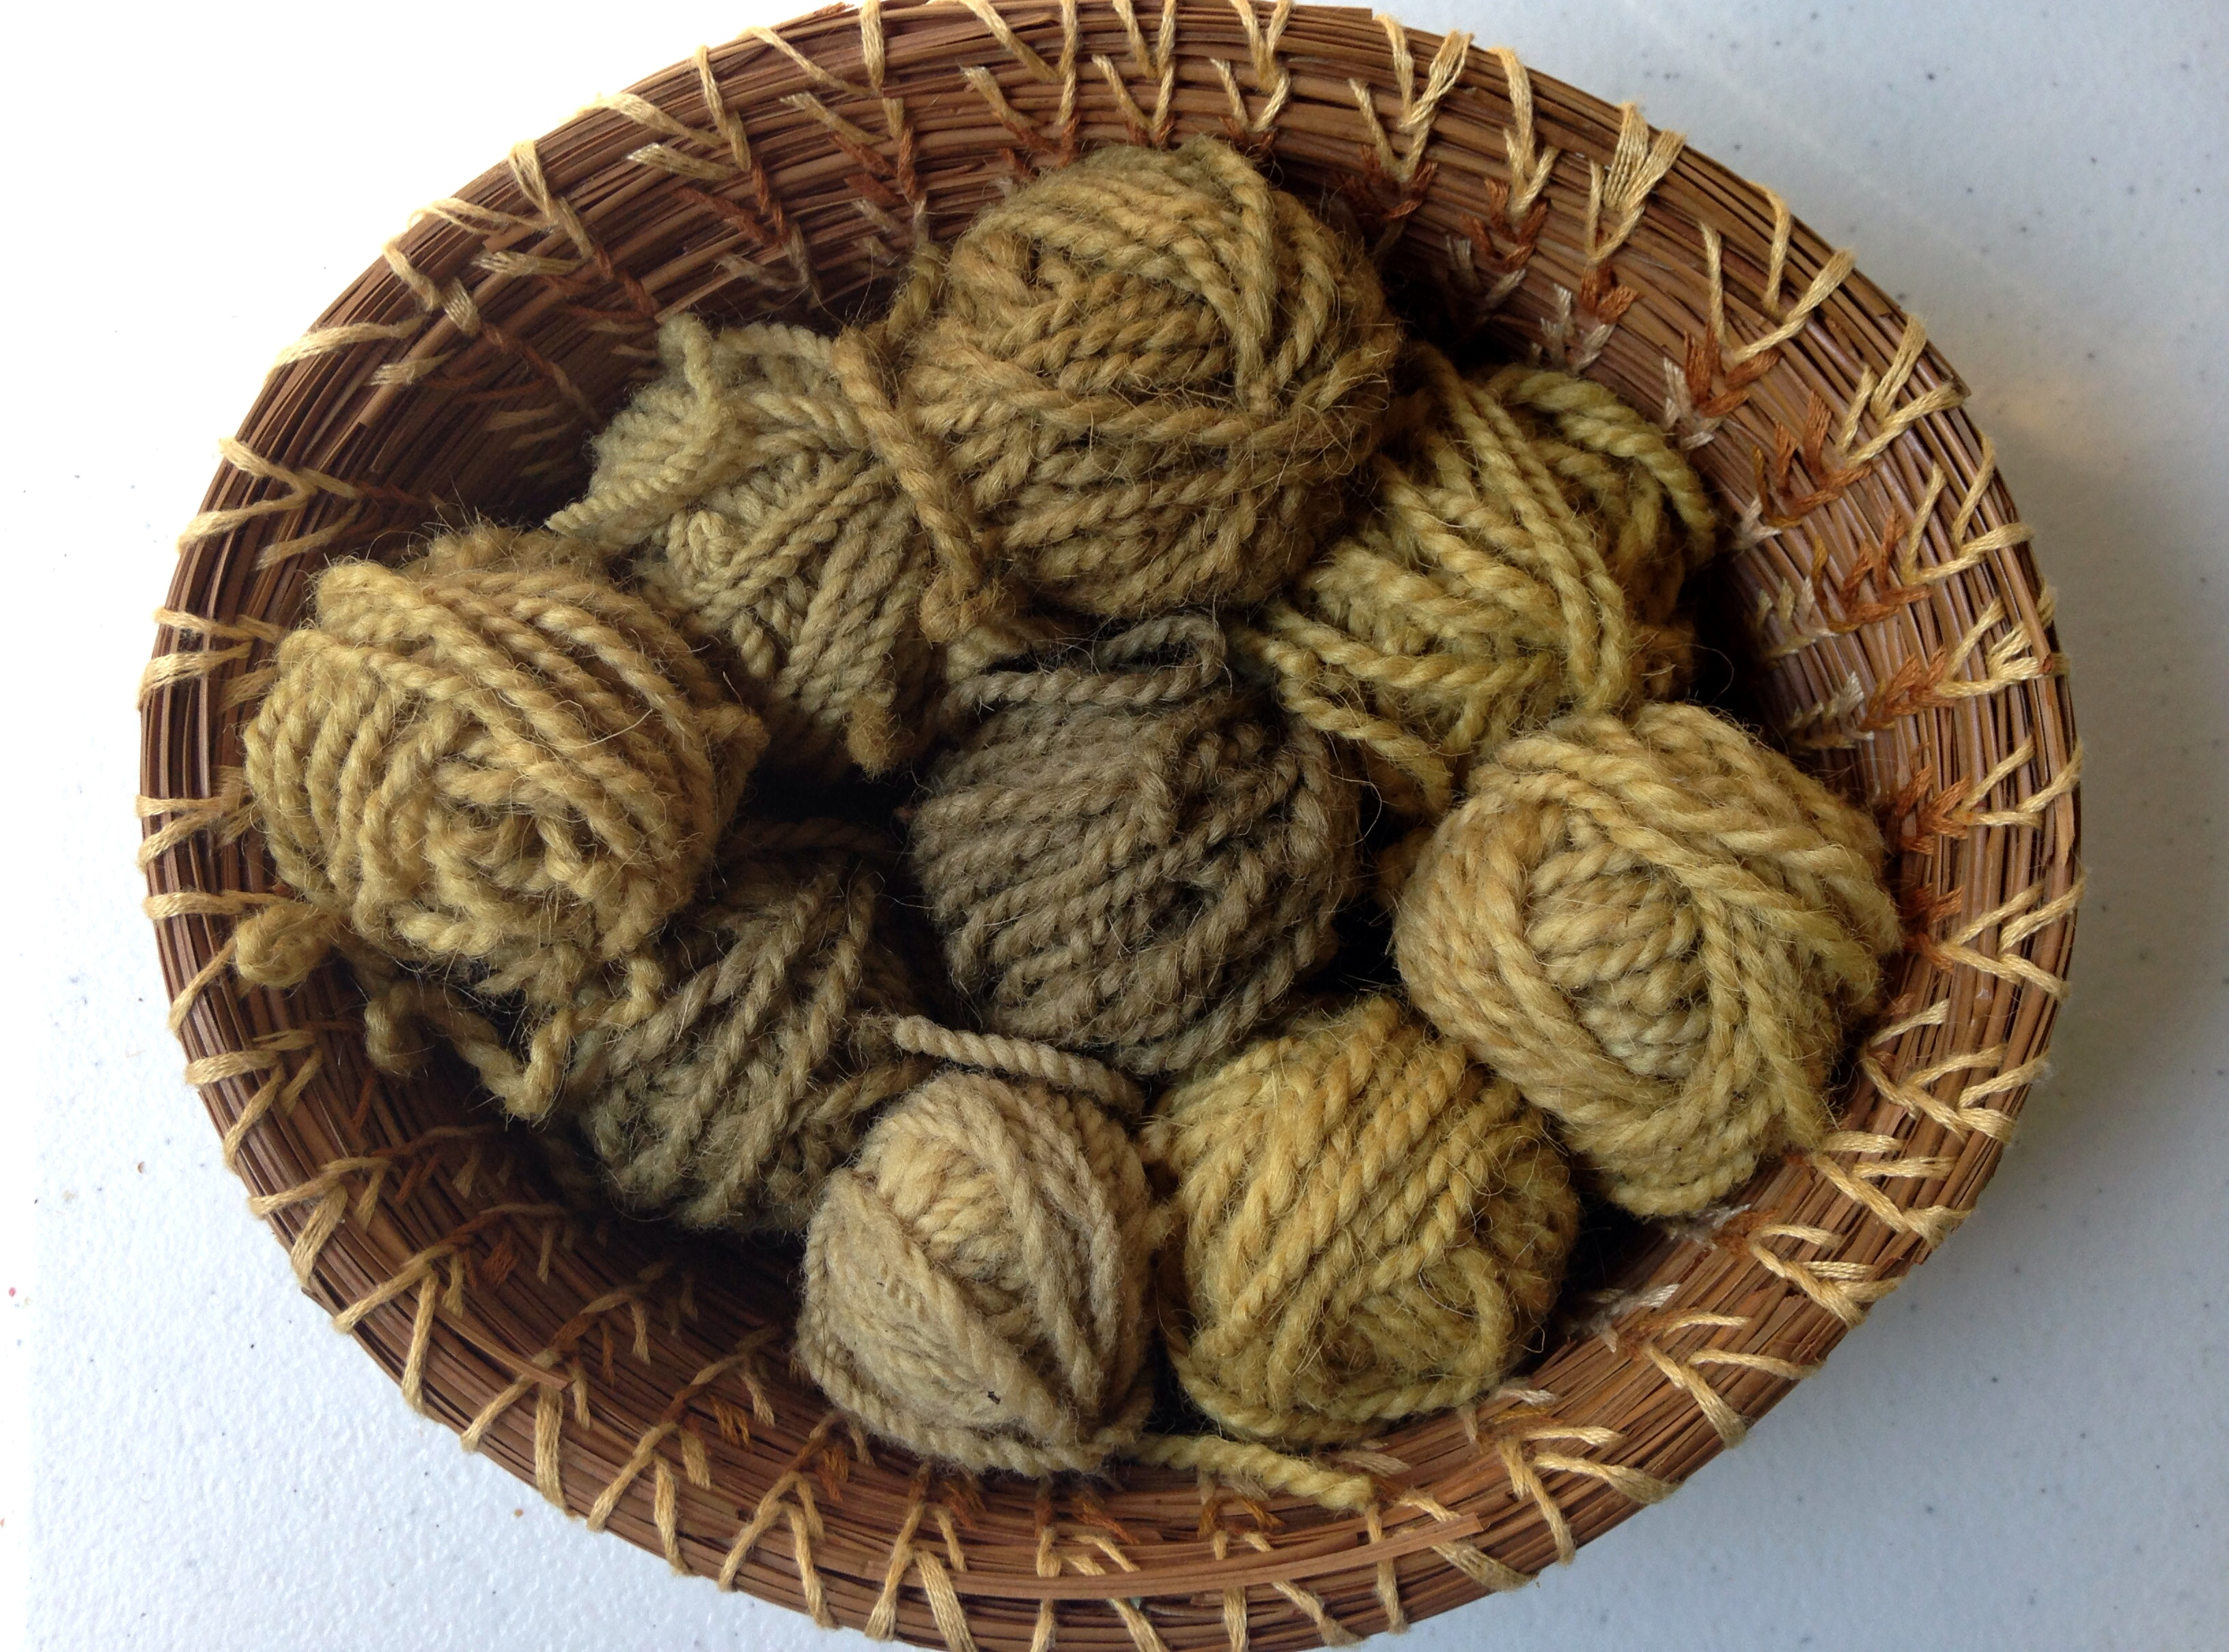 stinging nettle plant dye, natural dye, balls of yarn in a coiled pine needle basket